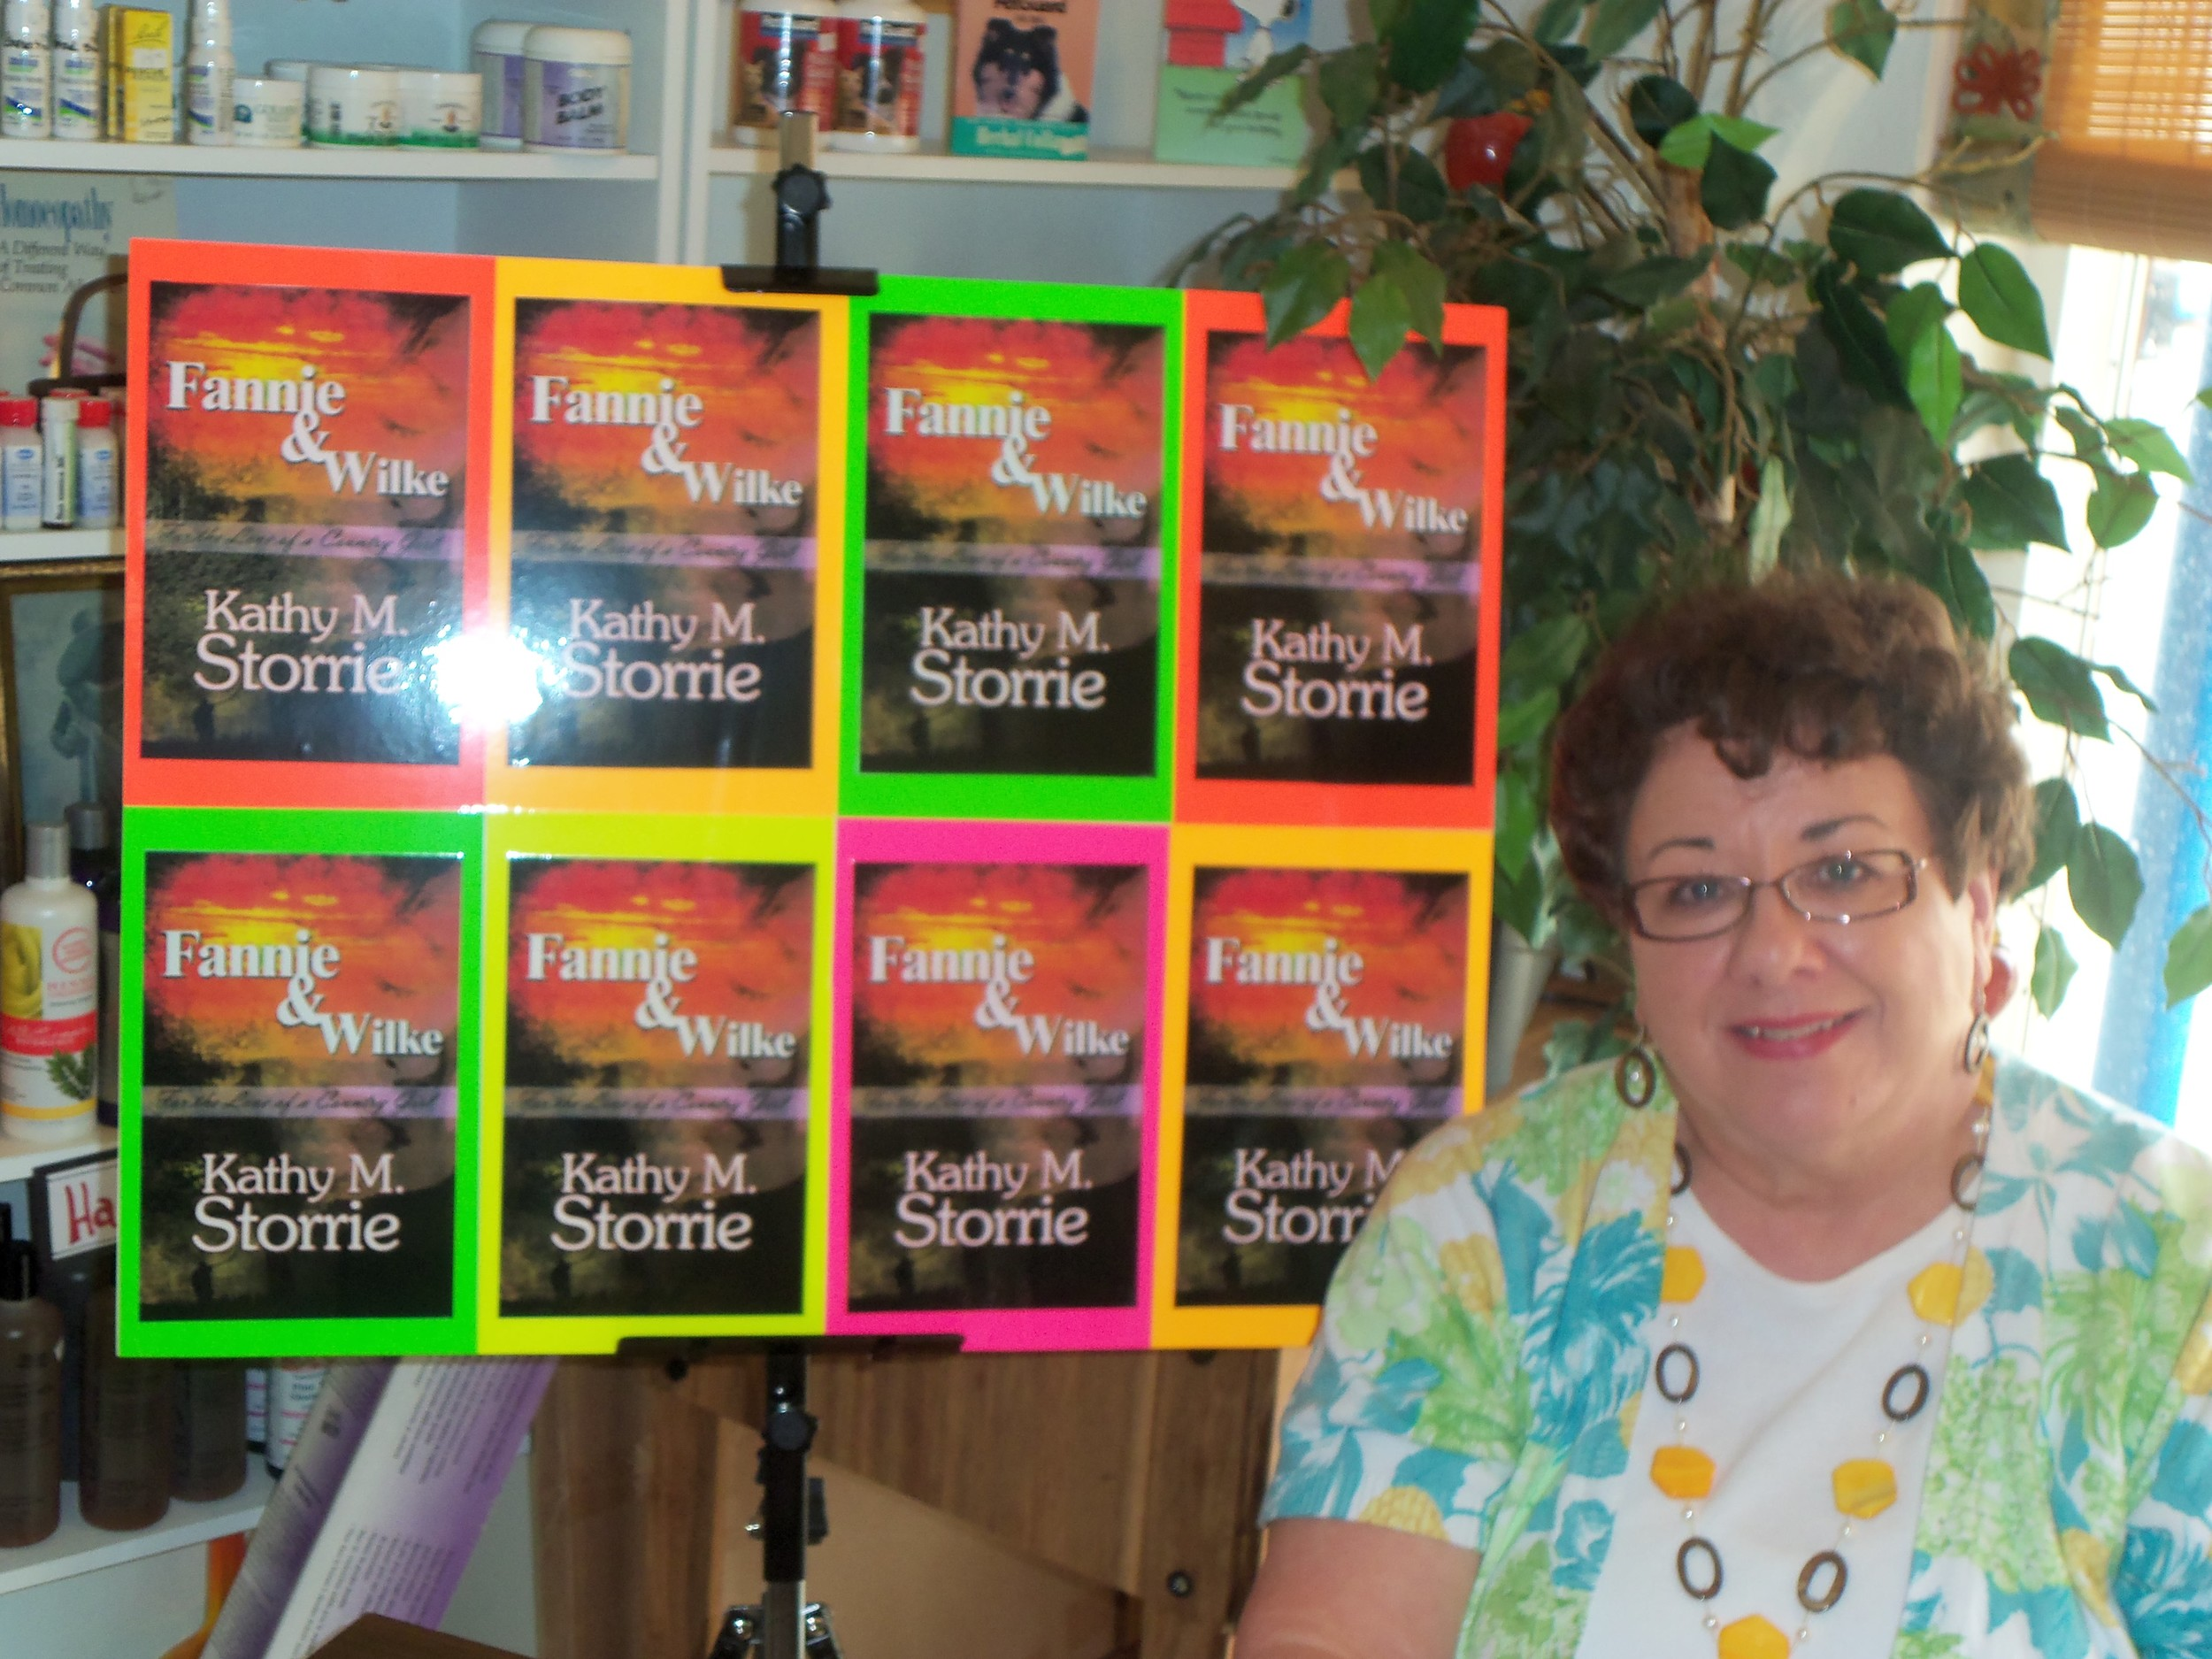 My first book signing was at HEALTH ON MAIN, Hamilton, Ohio. Fannie used lots of homeopathic healing remedies.